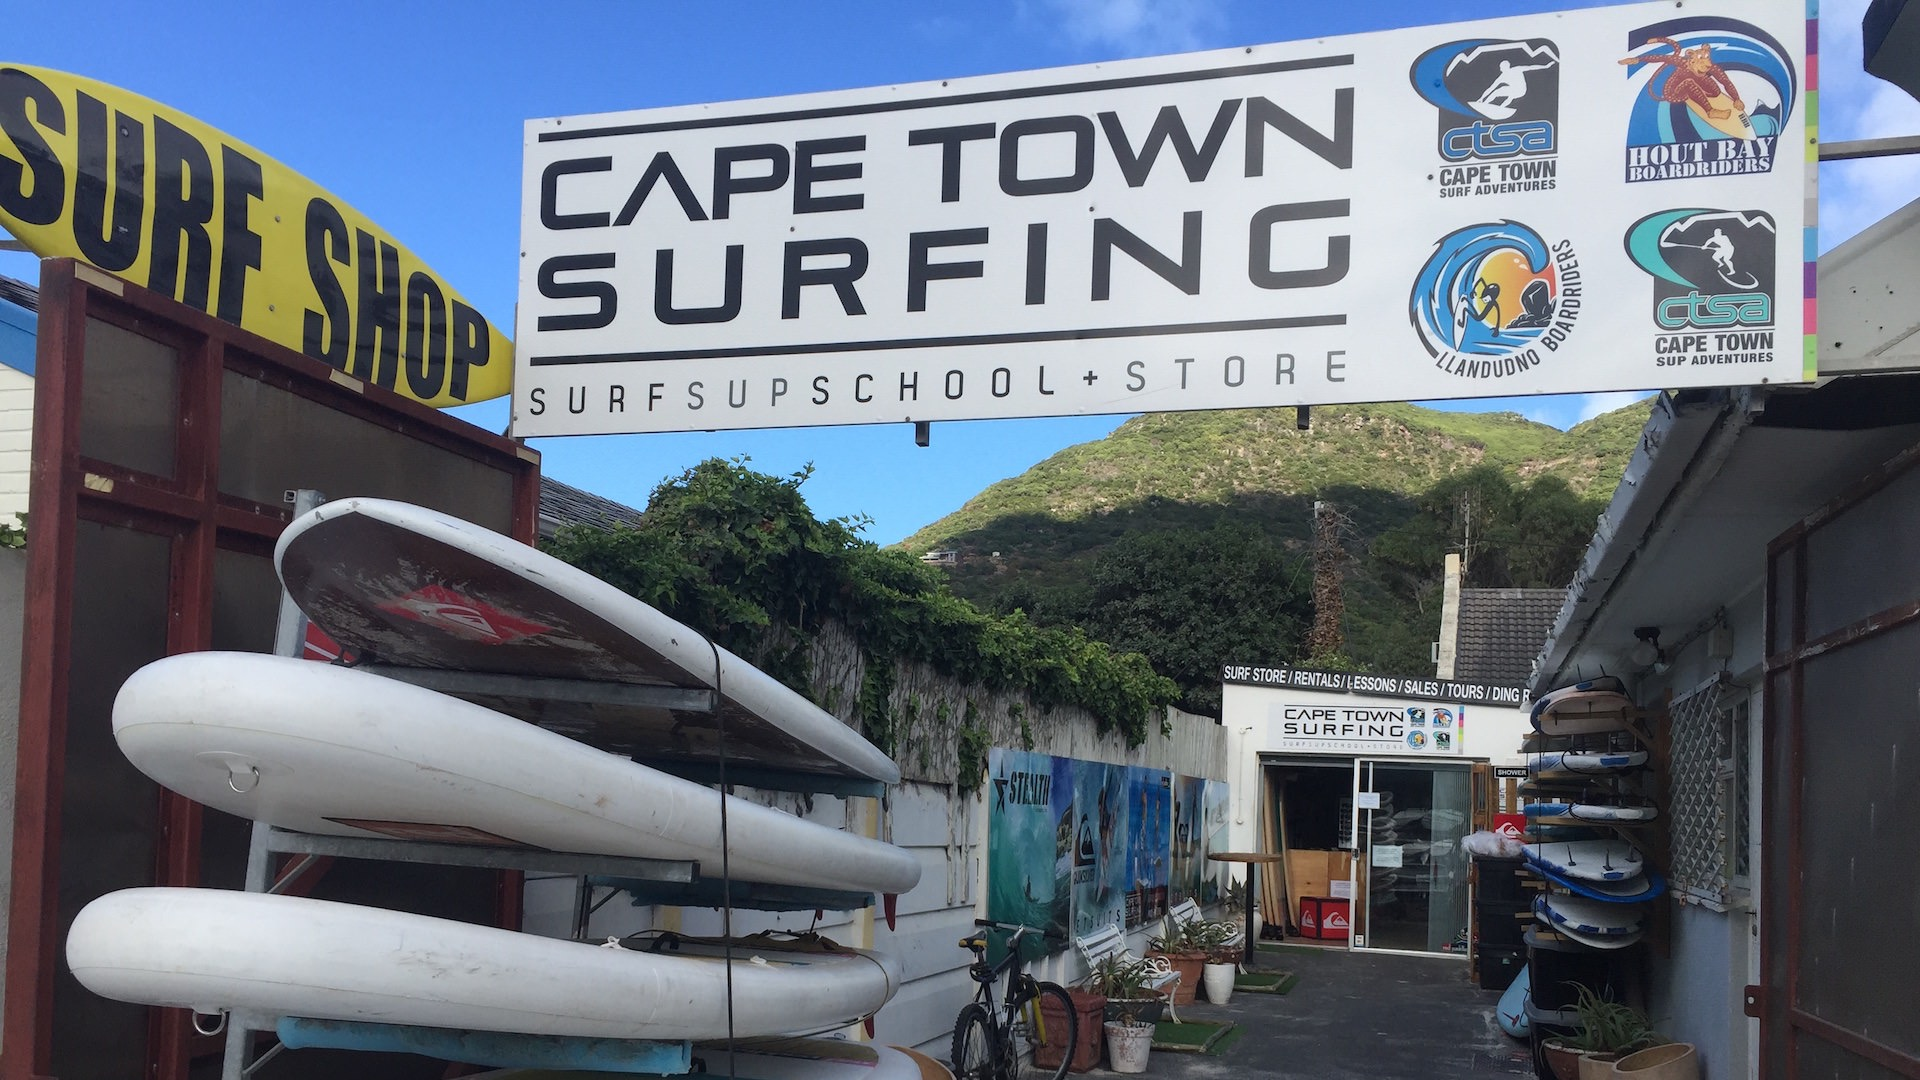 The CAPE TOWN SURFING shop in Hout Bay